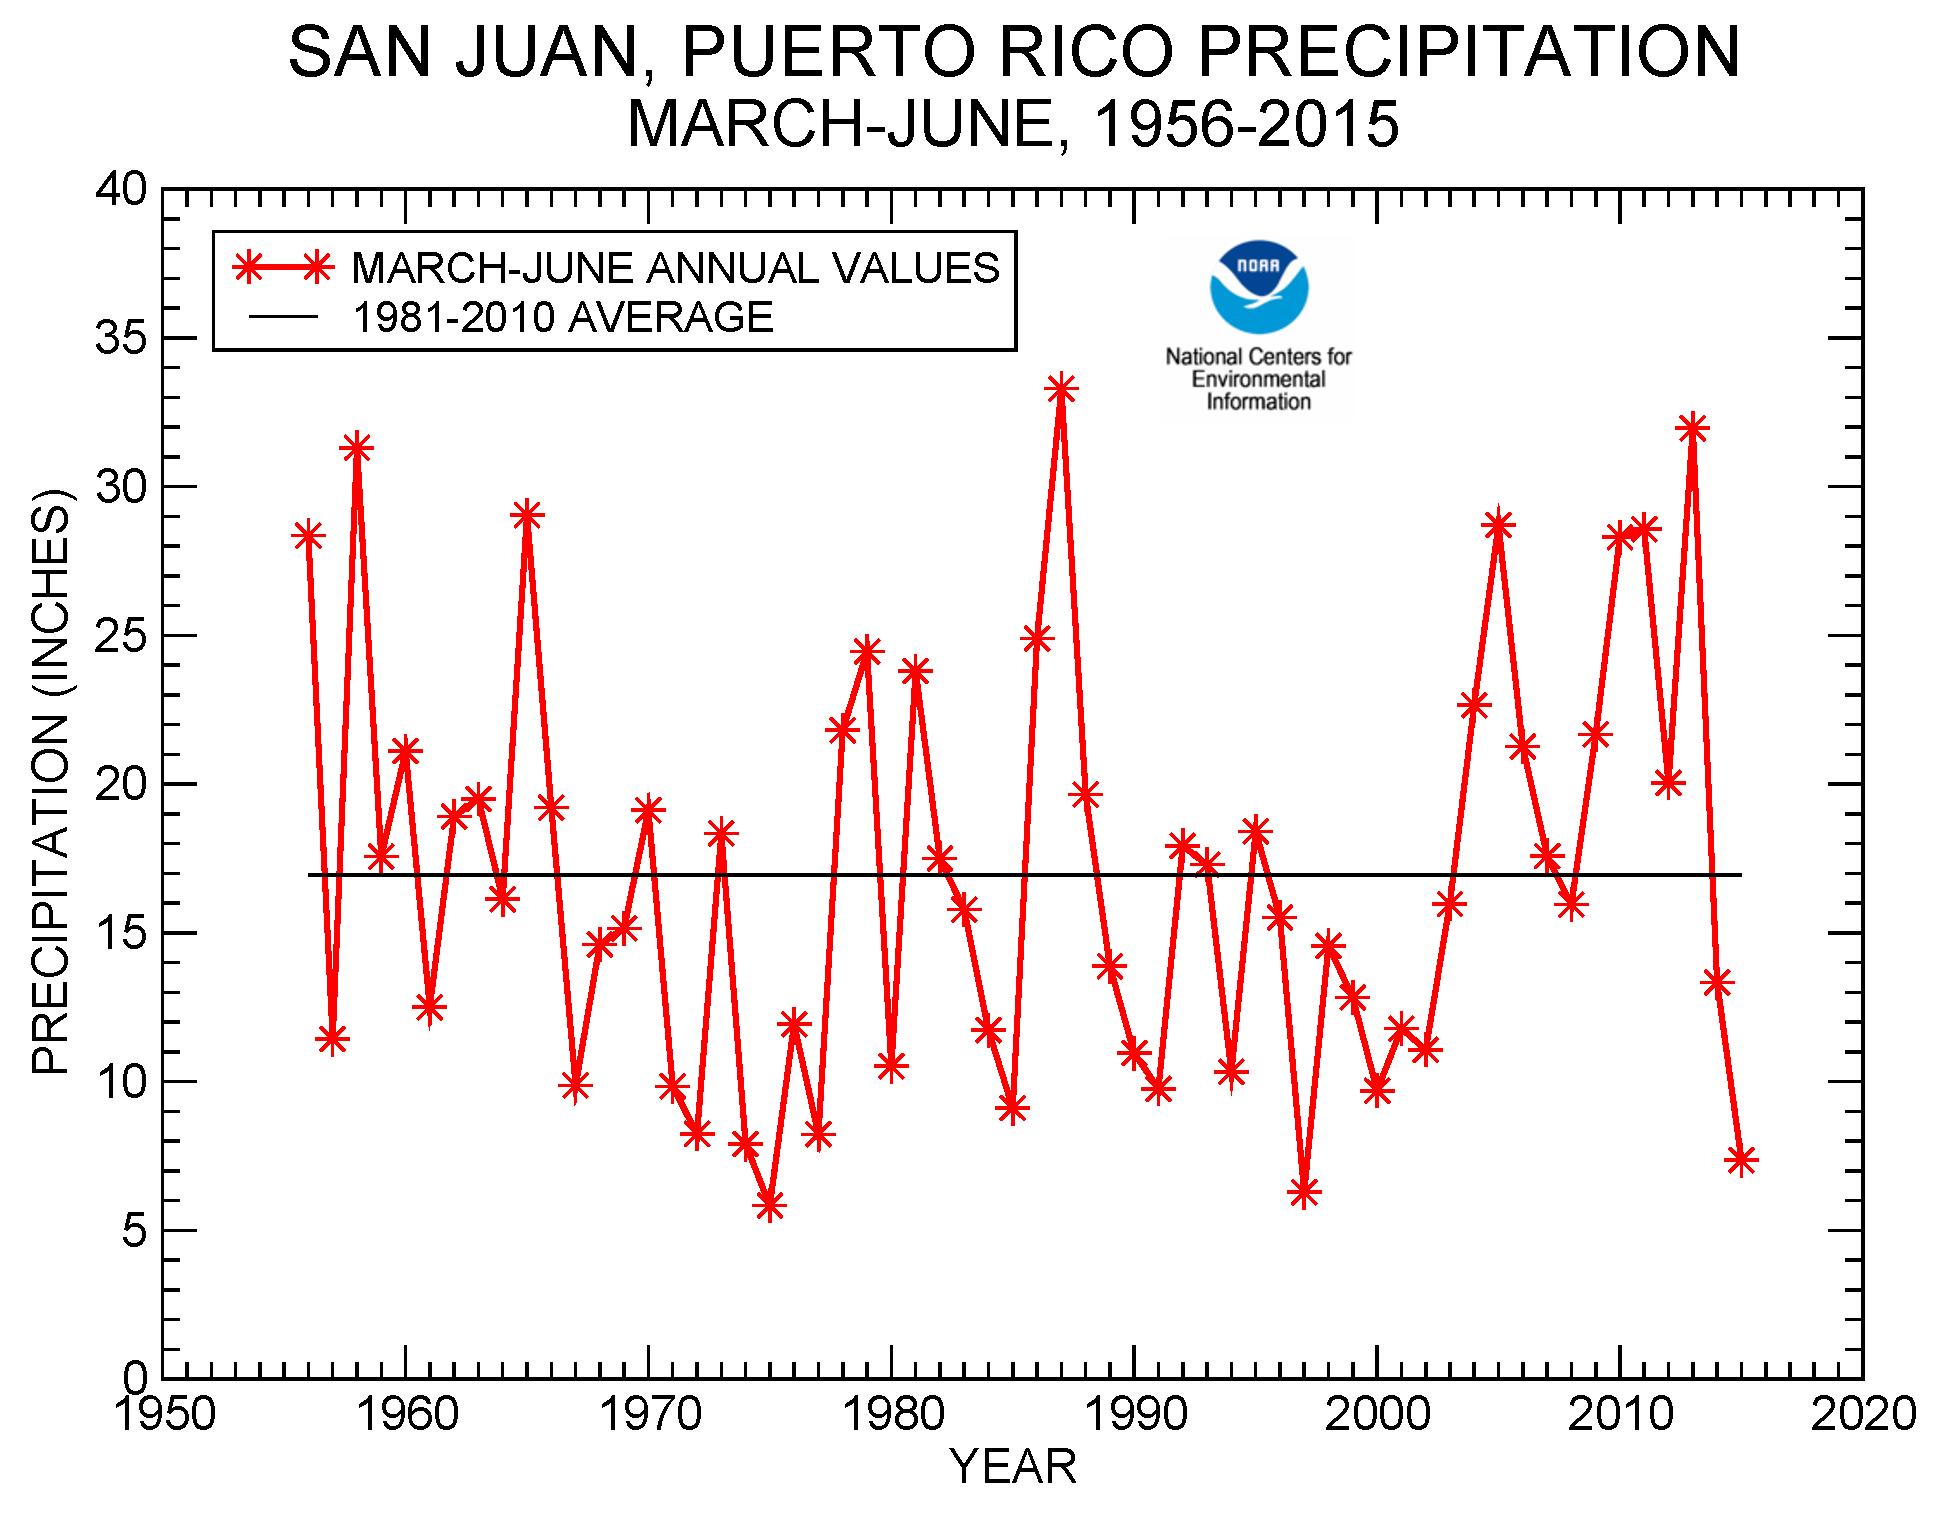 San Juan, Puerto Rico precipitation, March-June, 1956-2015